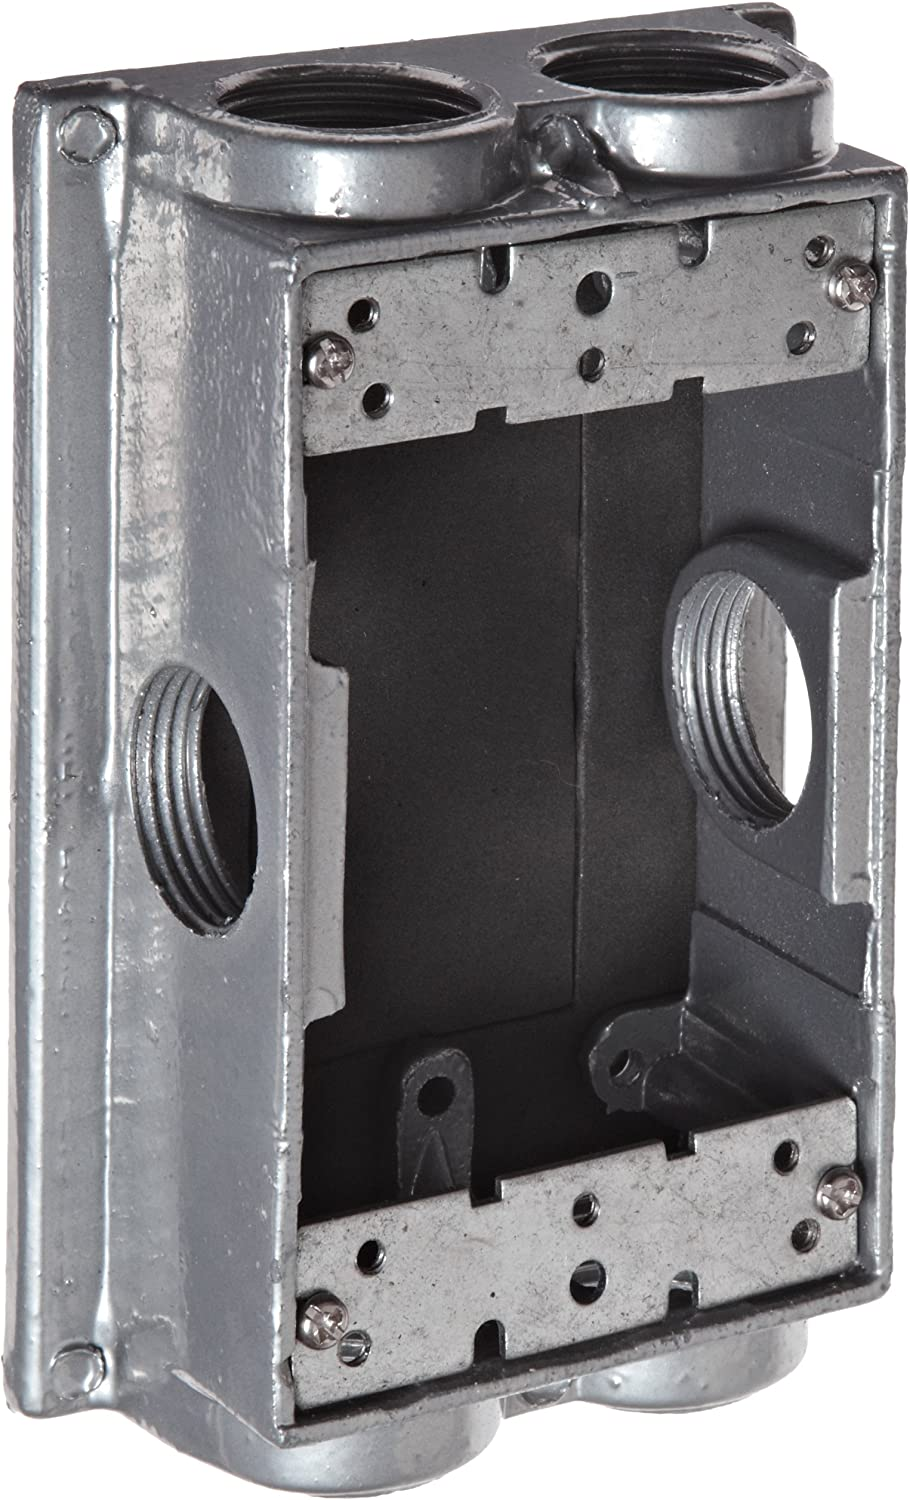 Morris Products 36550 Weatherproof One Gang Flanged Box Extension Adapter 3//4 Outlet Hole Diameter 5-1//4 Length 3-1//2 Width 6 Outlet Holes 1-1//2 Depth Gray 2 Closure Plugs 5-1//4 Length 3-1//2 Width 1-1//2 Depth 3//4 Outlet Hole Diameter